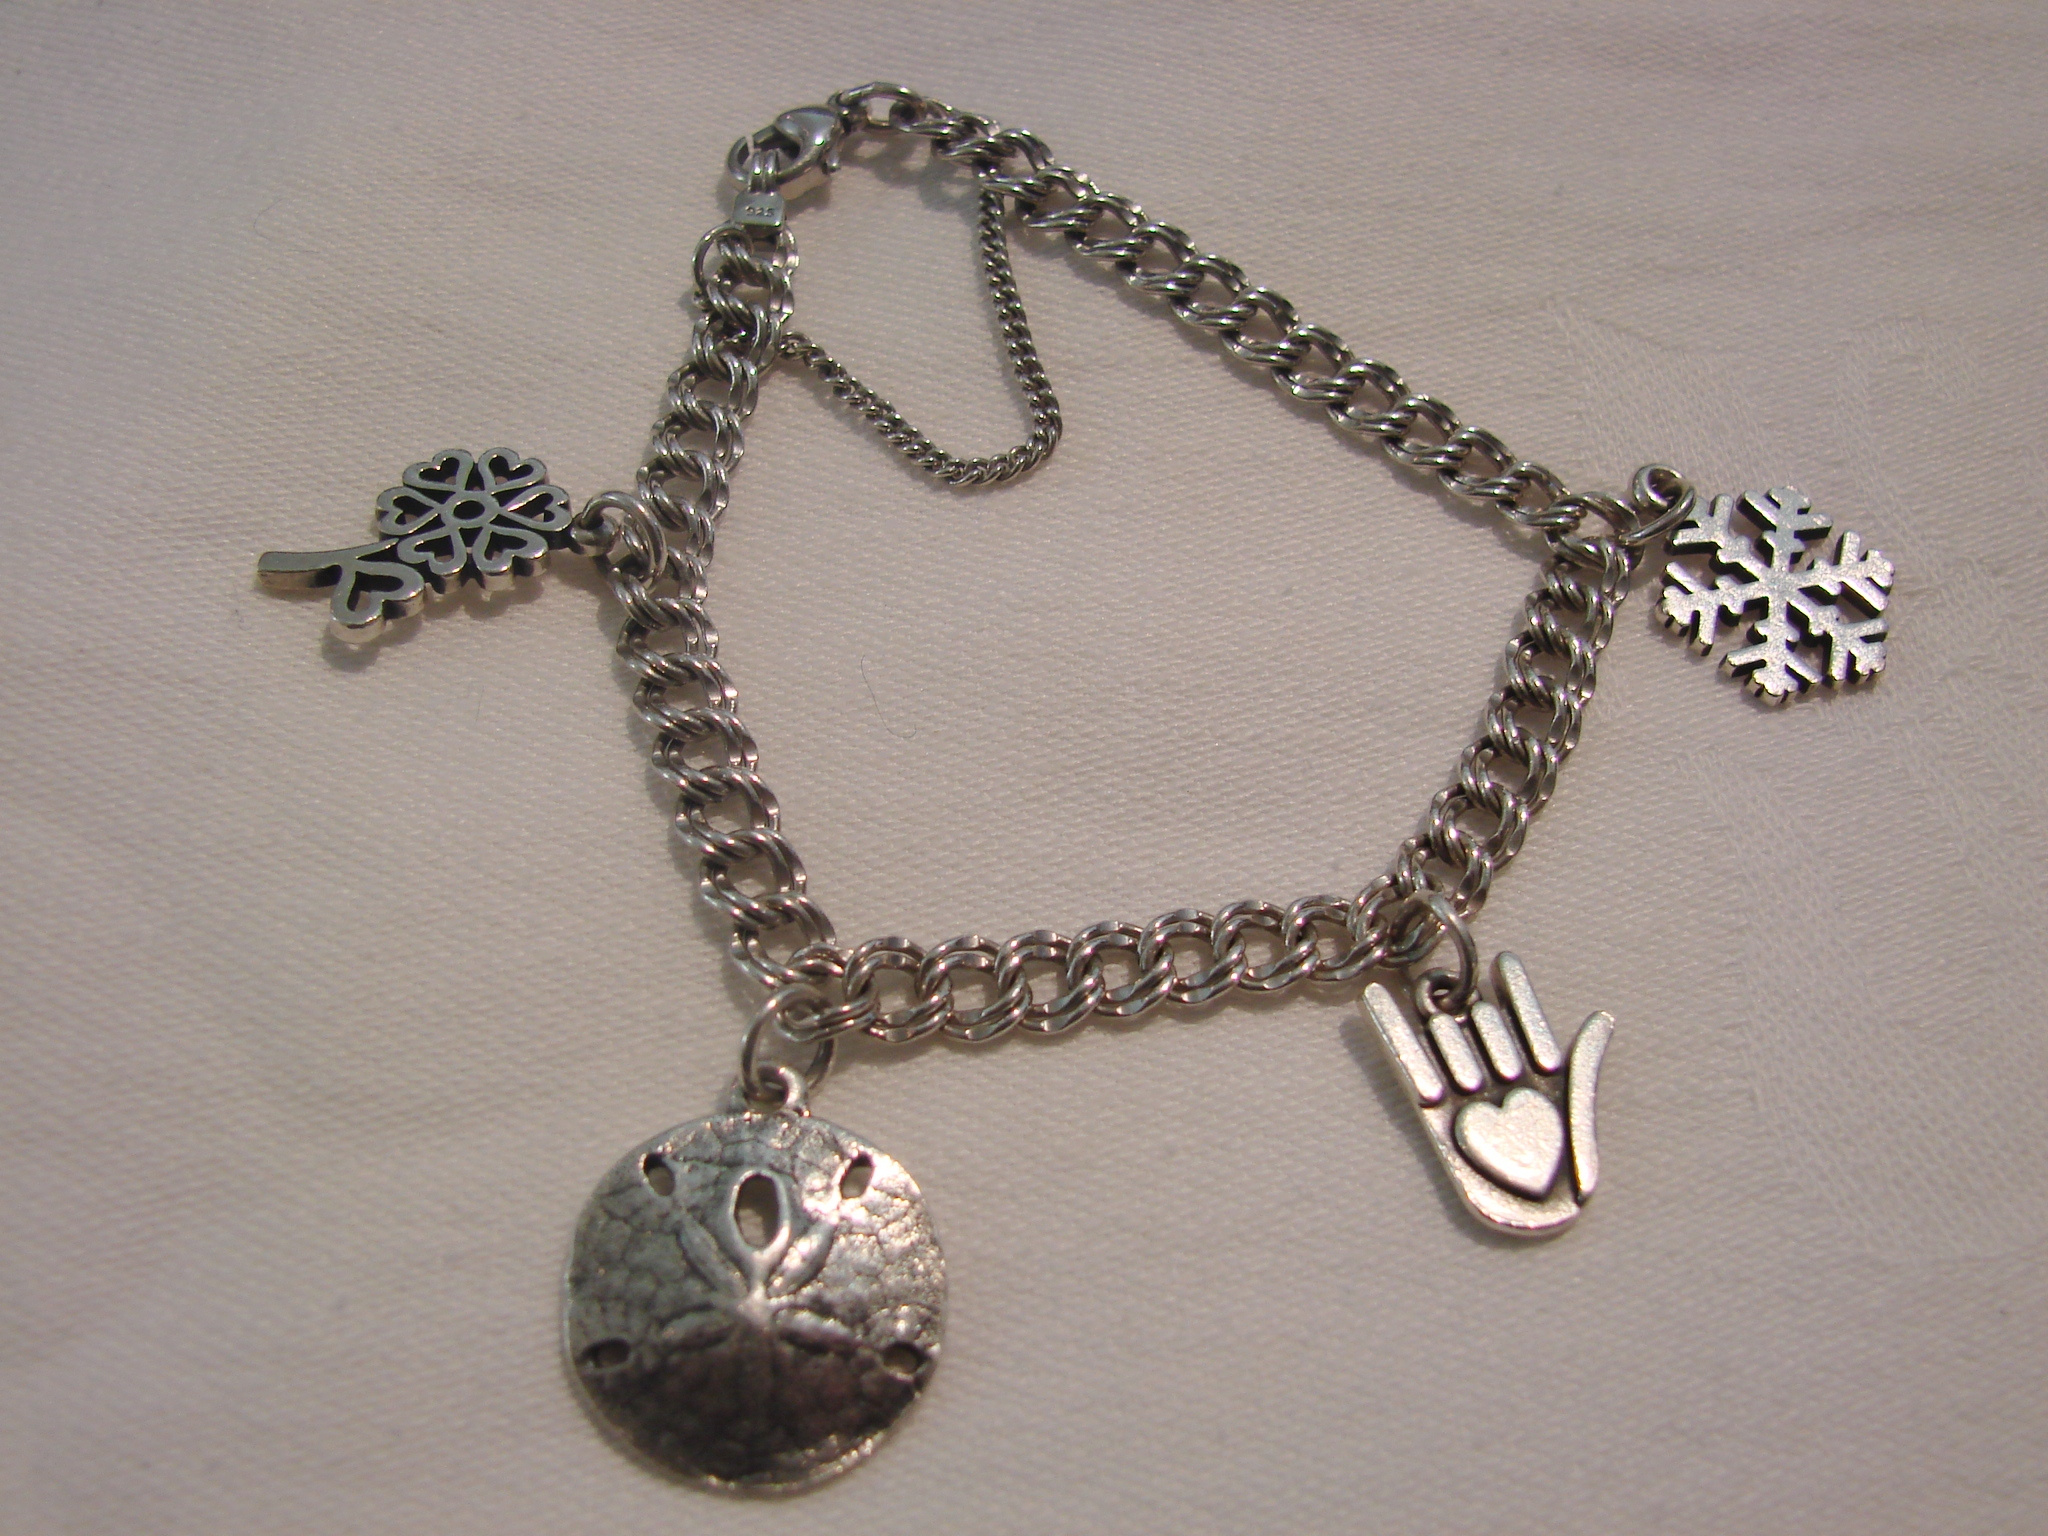 james avery charm bracelet with 4 charms georgetown